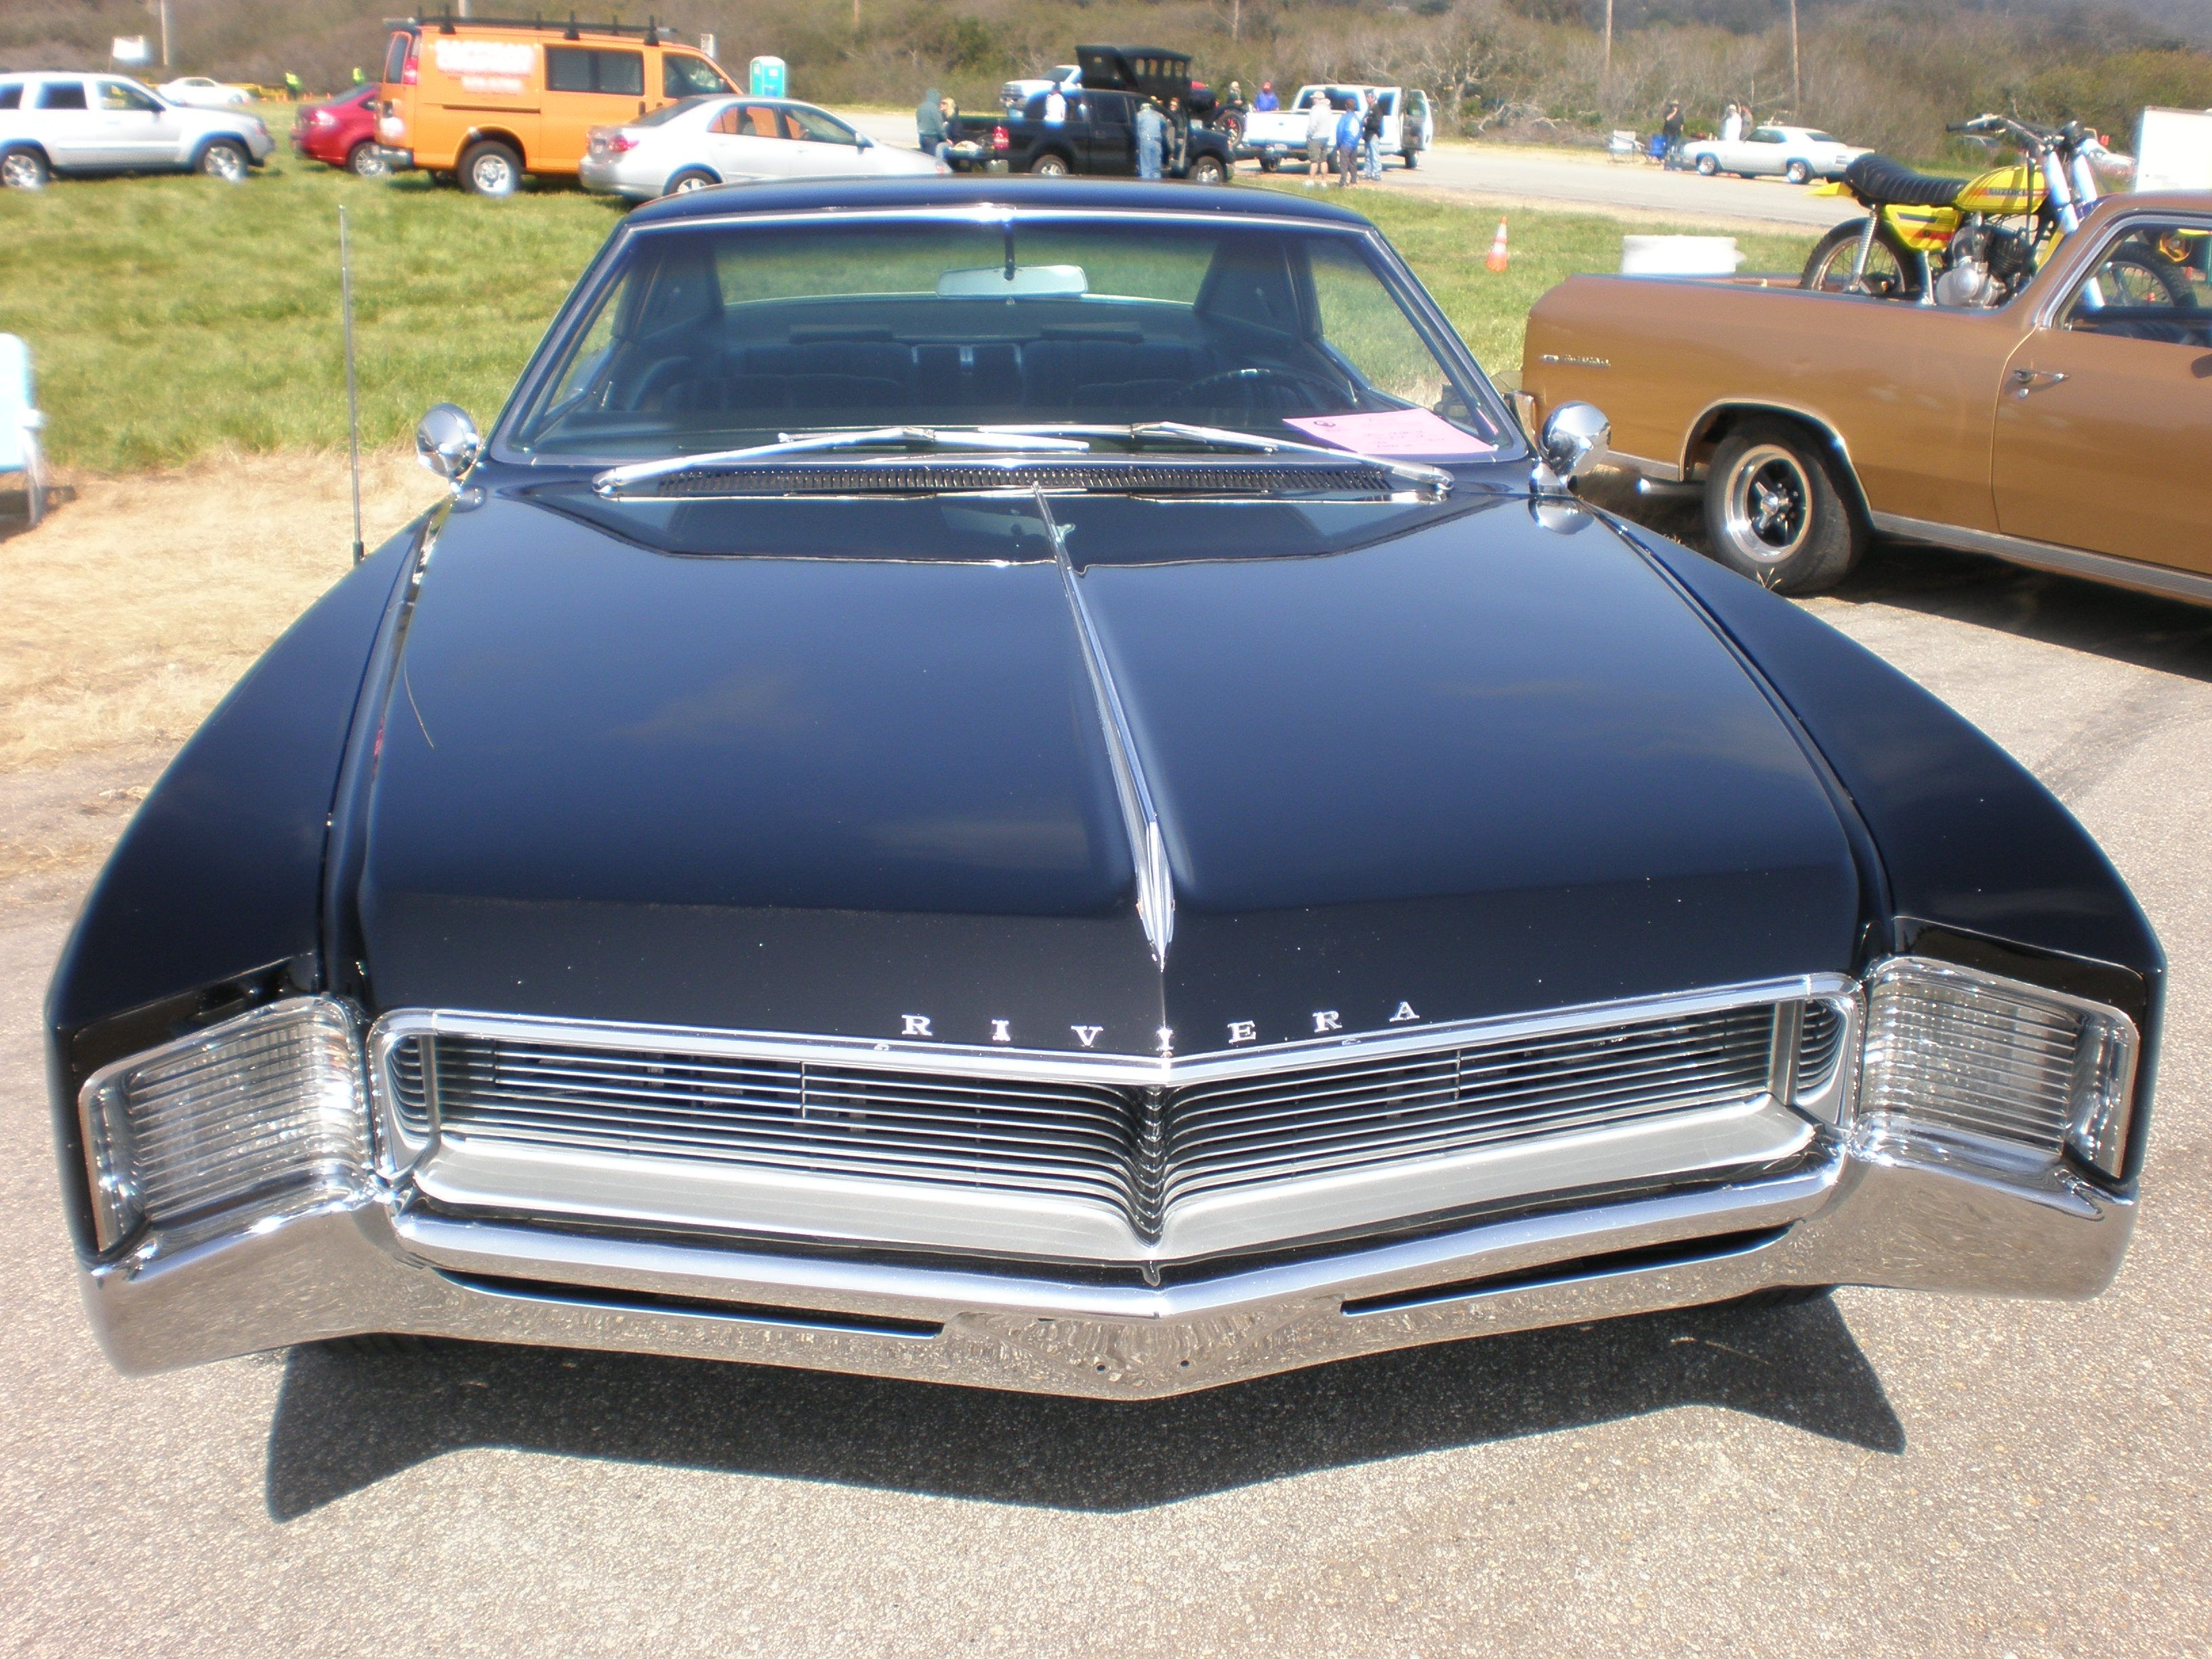 Brought to you by house of insurance in eugene oregon buick pinterest buick riviera buick and eugene oregon